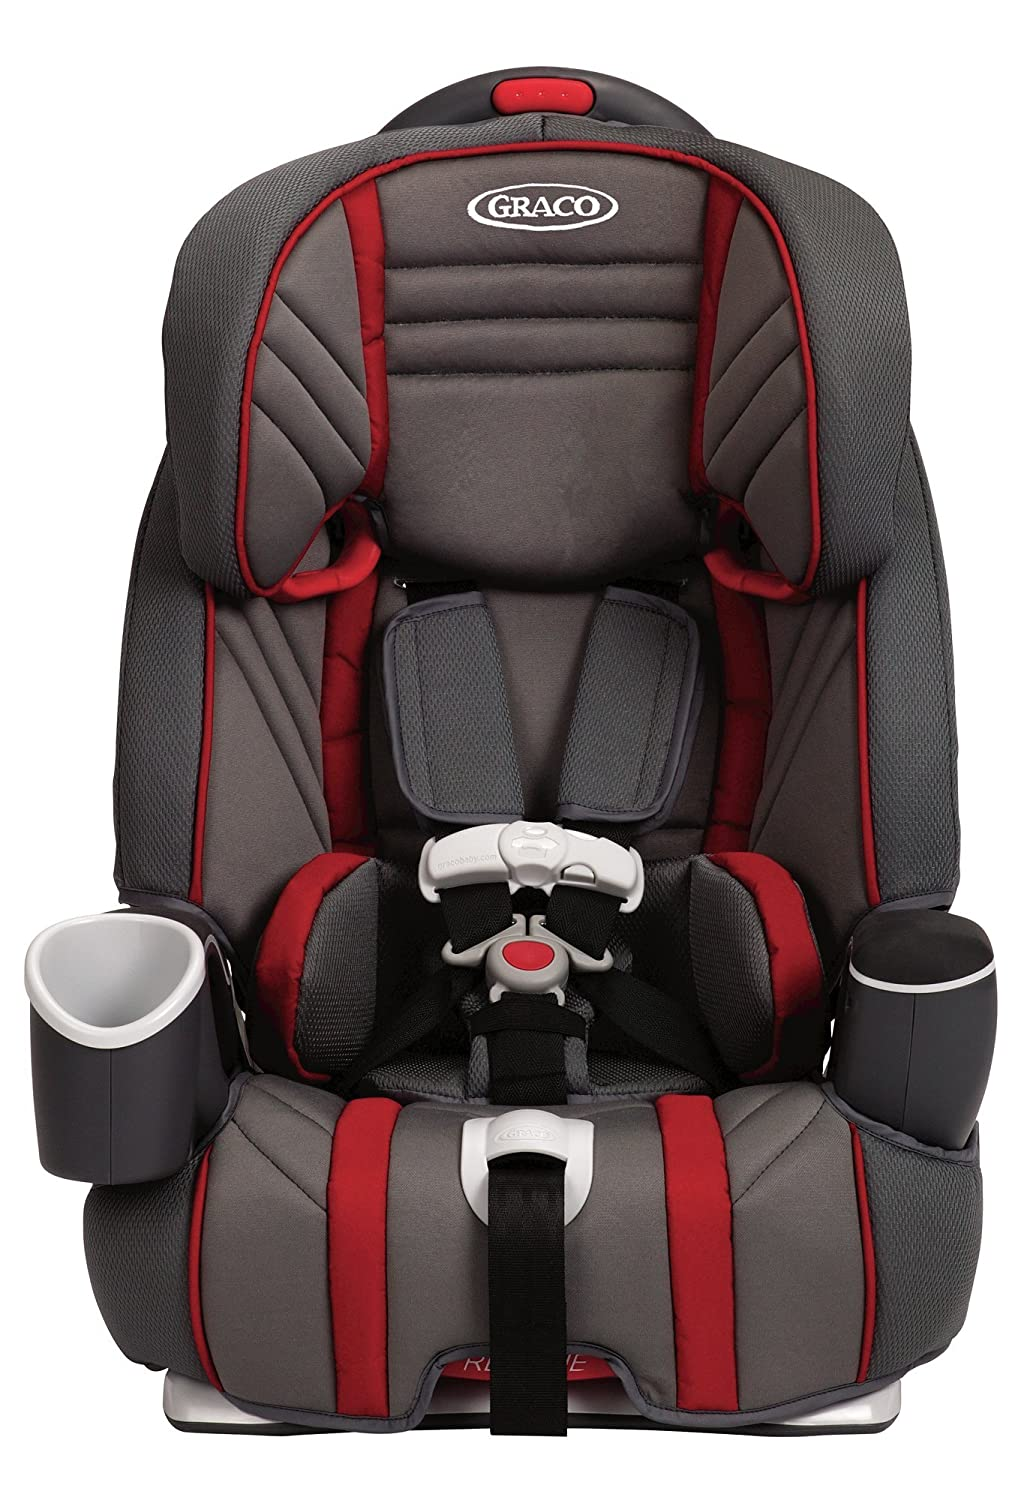 Graco nautilus 3 in 1 multi use car seat - Amazon Com Graco Nautilus 3 In 1 Car Seat Garnet Forward Facing Child Safety Car Seats Baby